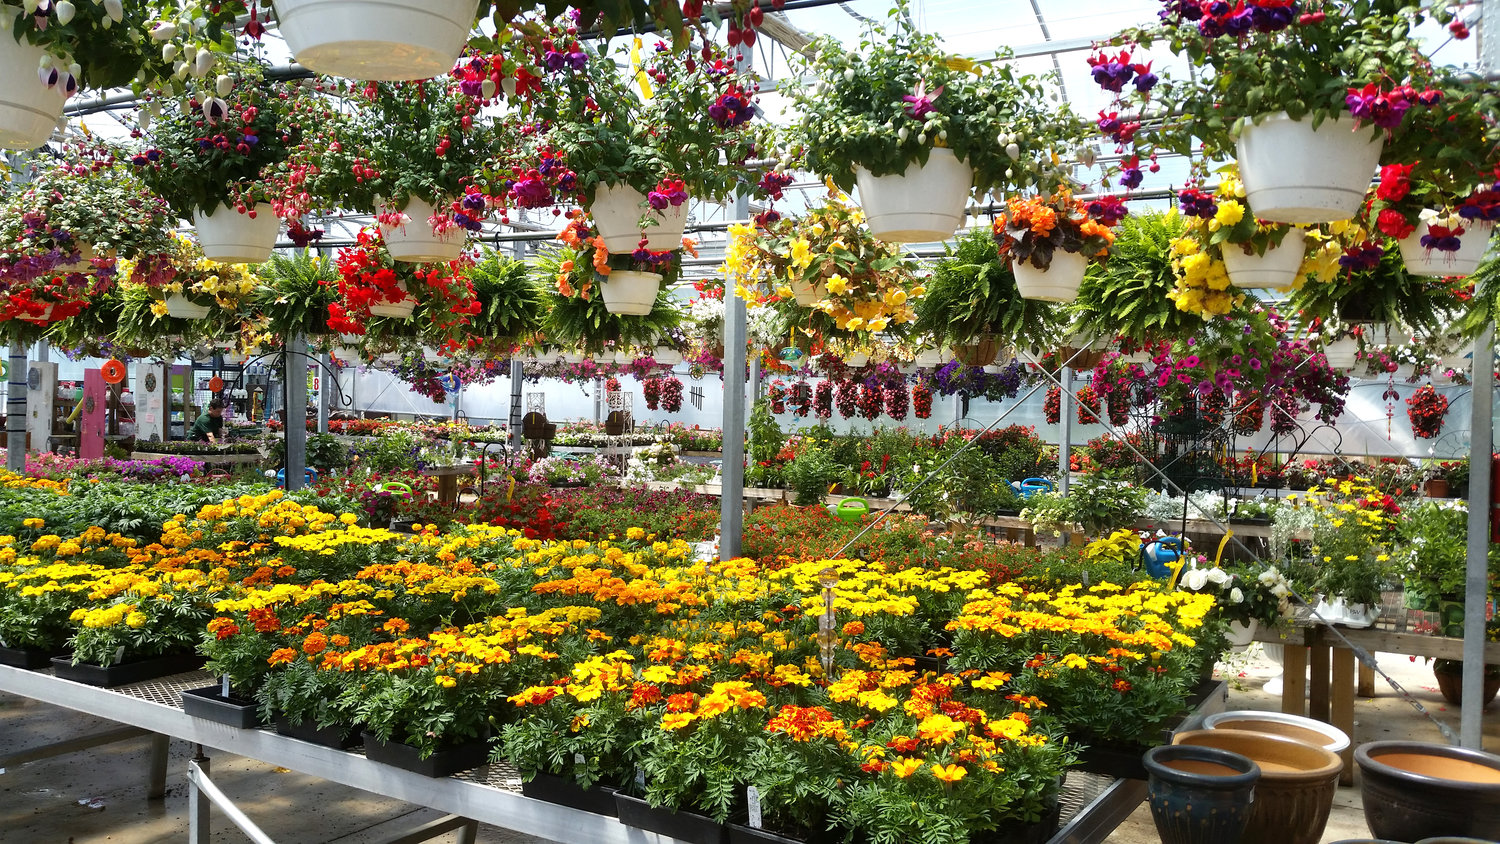 It S Green And Colorful All Year Round At Olney S Flowers Rome